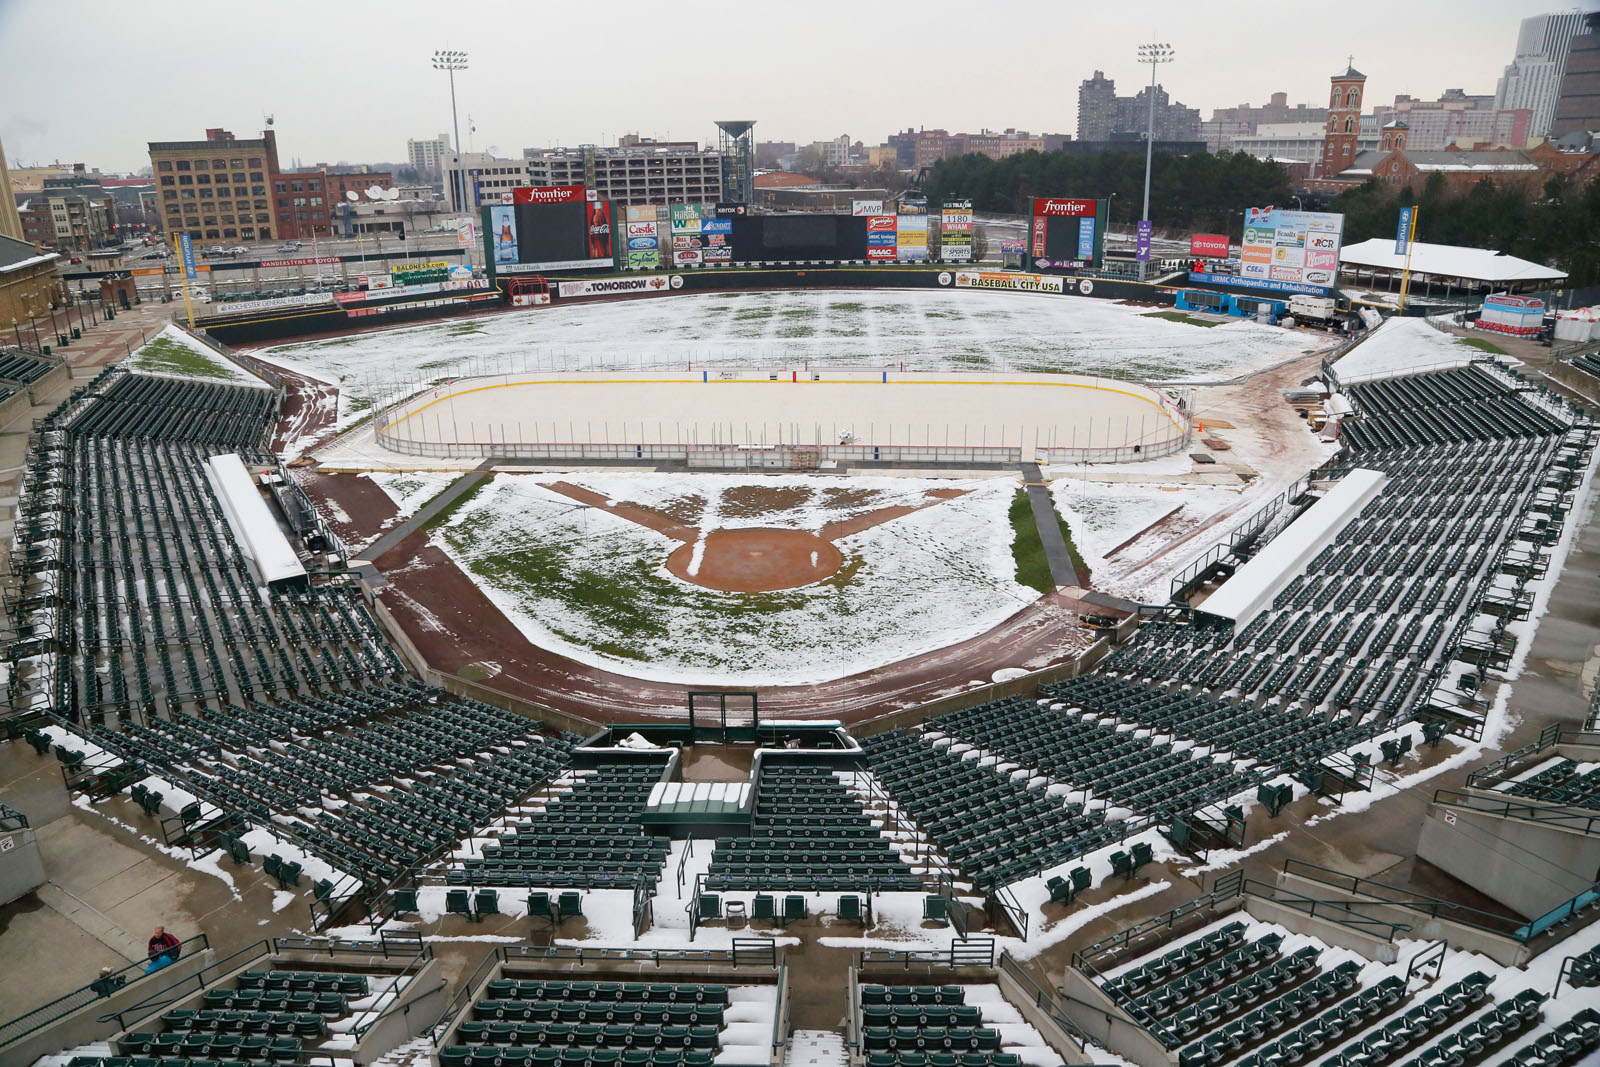 The rink as seen from the press box at Red Wing Stadium at Frontier Field.